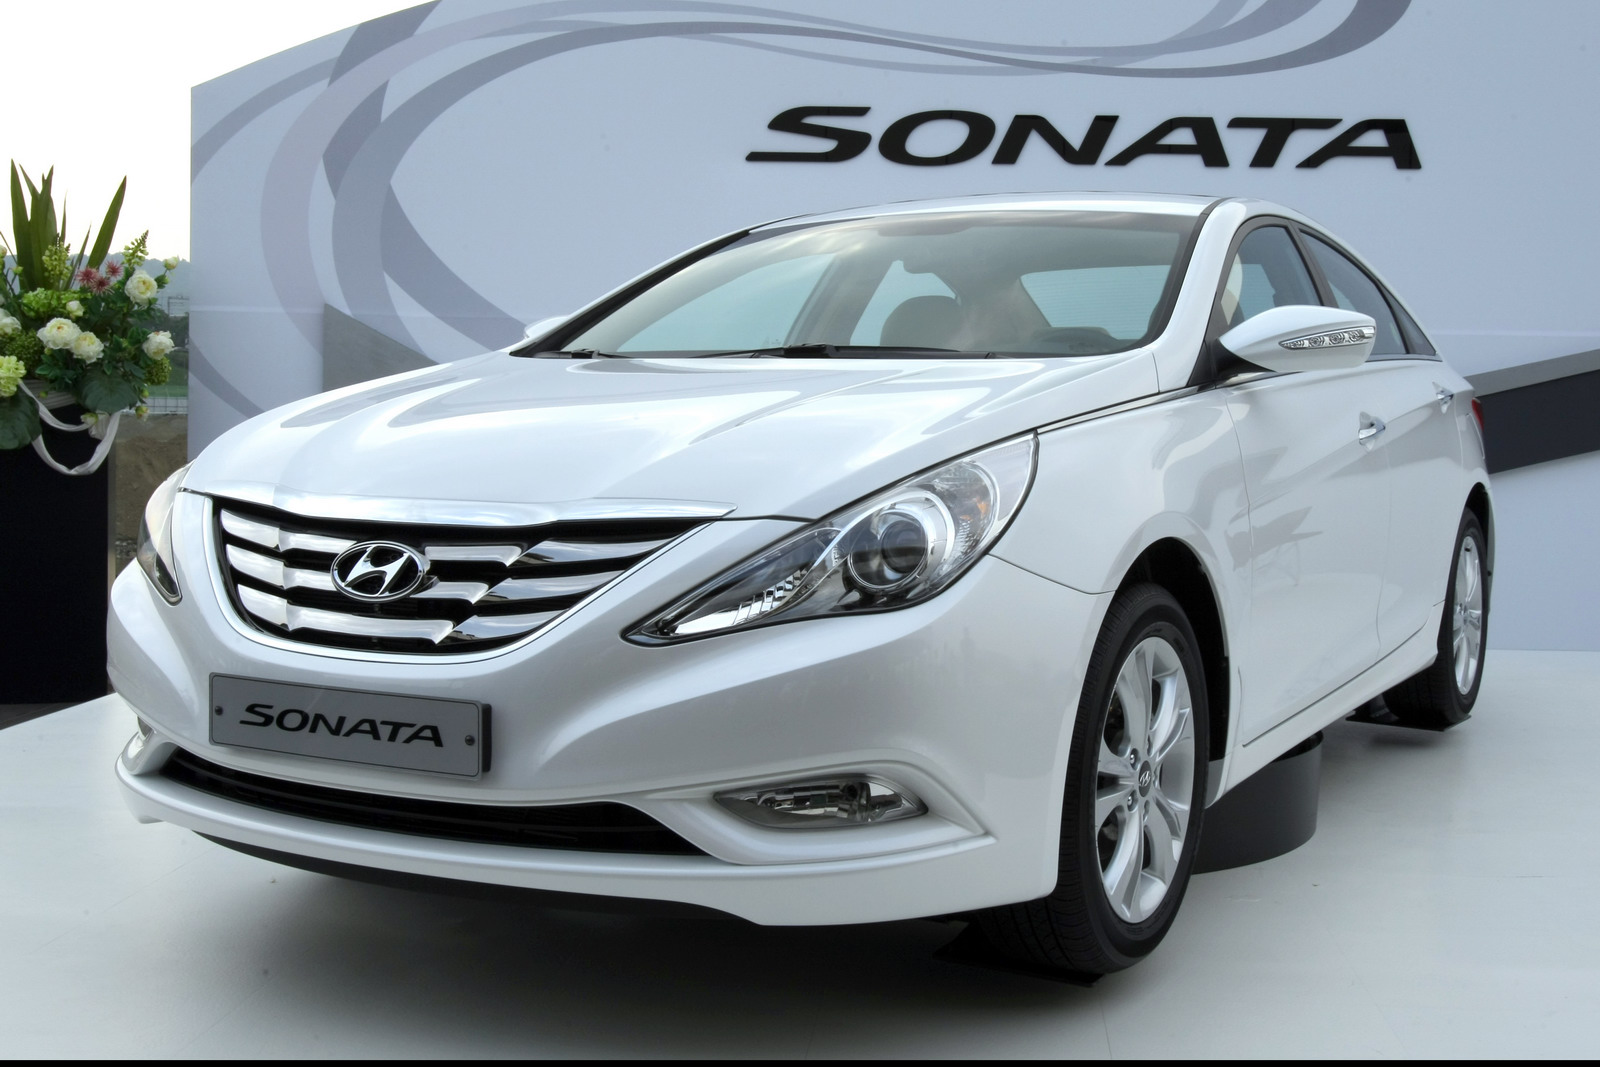 2011 Hyundai Sonata Well Turned Cars 2011 Hyundai Sonata